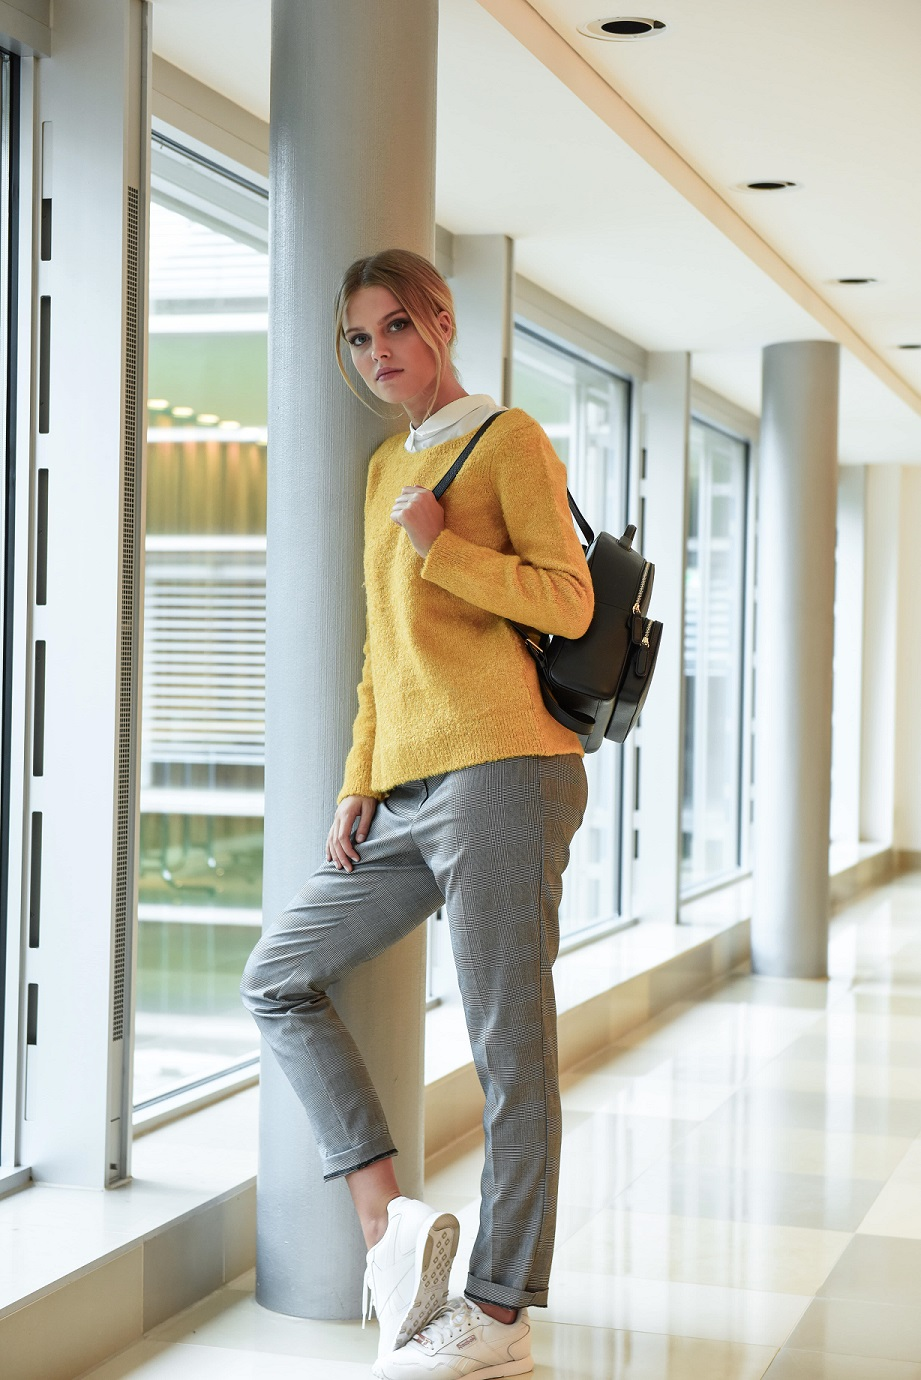 Back-to-University-Styling mit Trendteilen in Herbstfarben